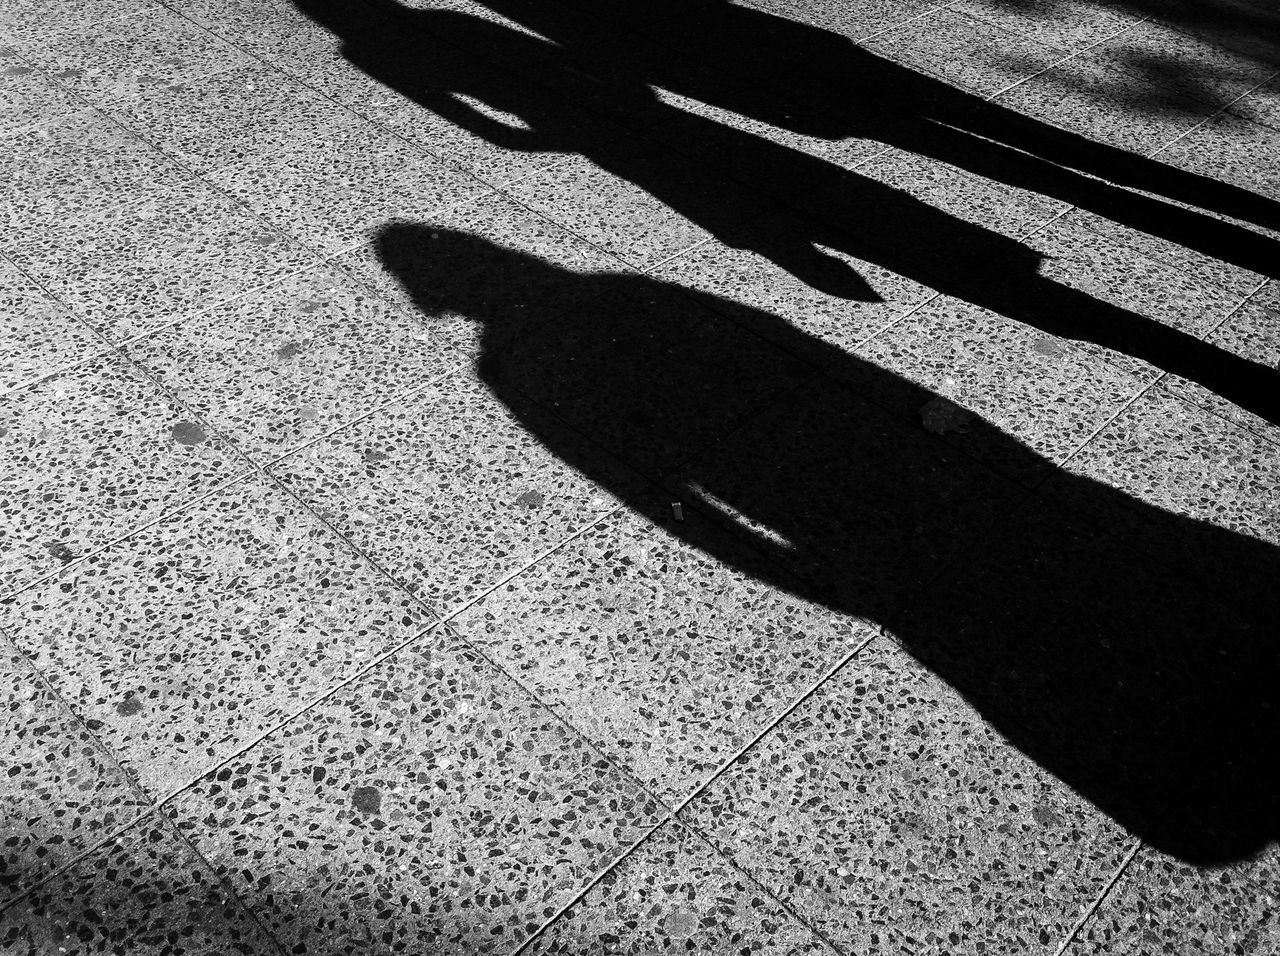 shadow, sunlight, focus on shadow, real people, day, outdoors, low section, nature